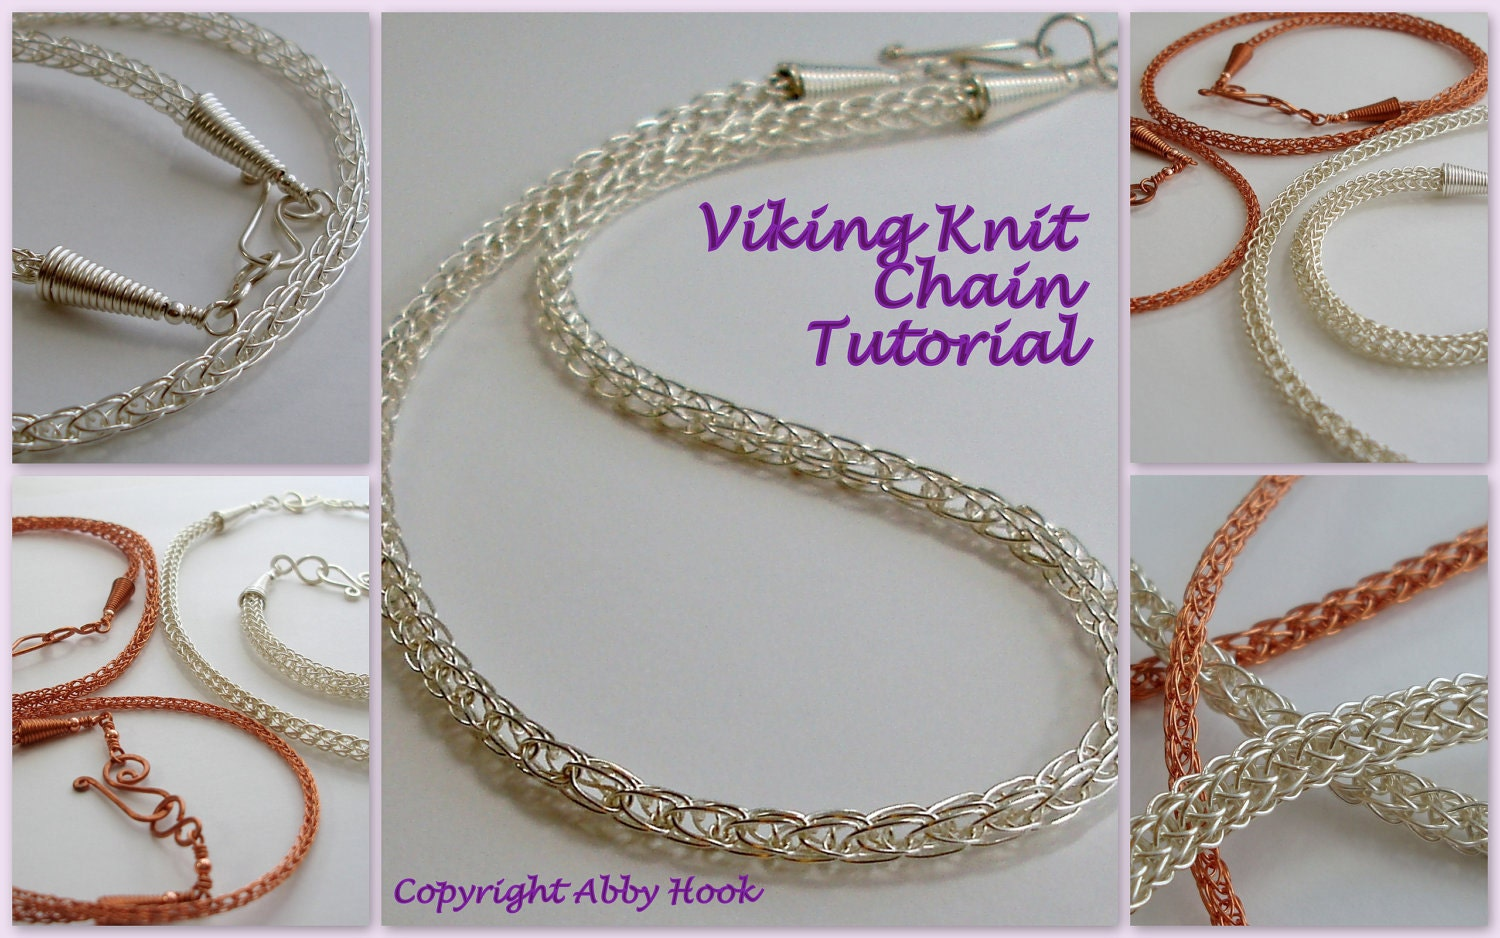 Viking Knitting Tutorial Pdf : Viking knit chain wire jewelry tutorial pdf file by